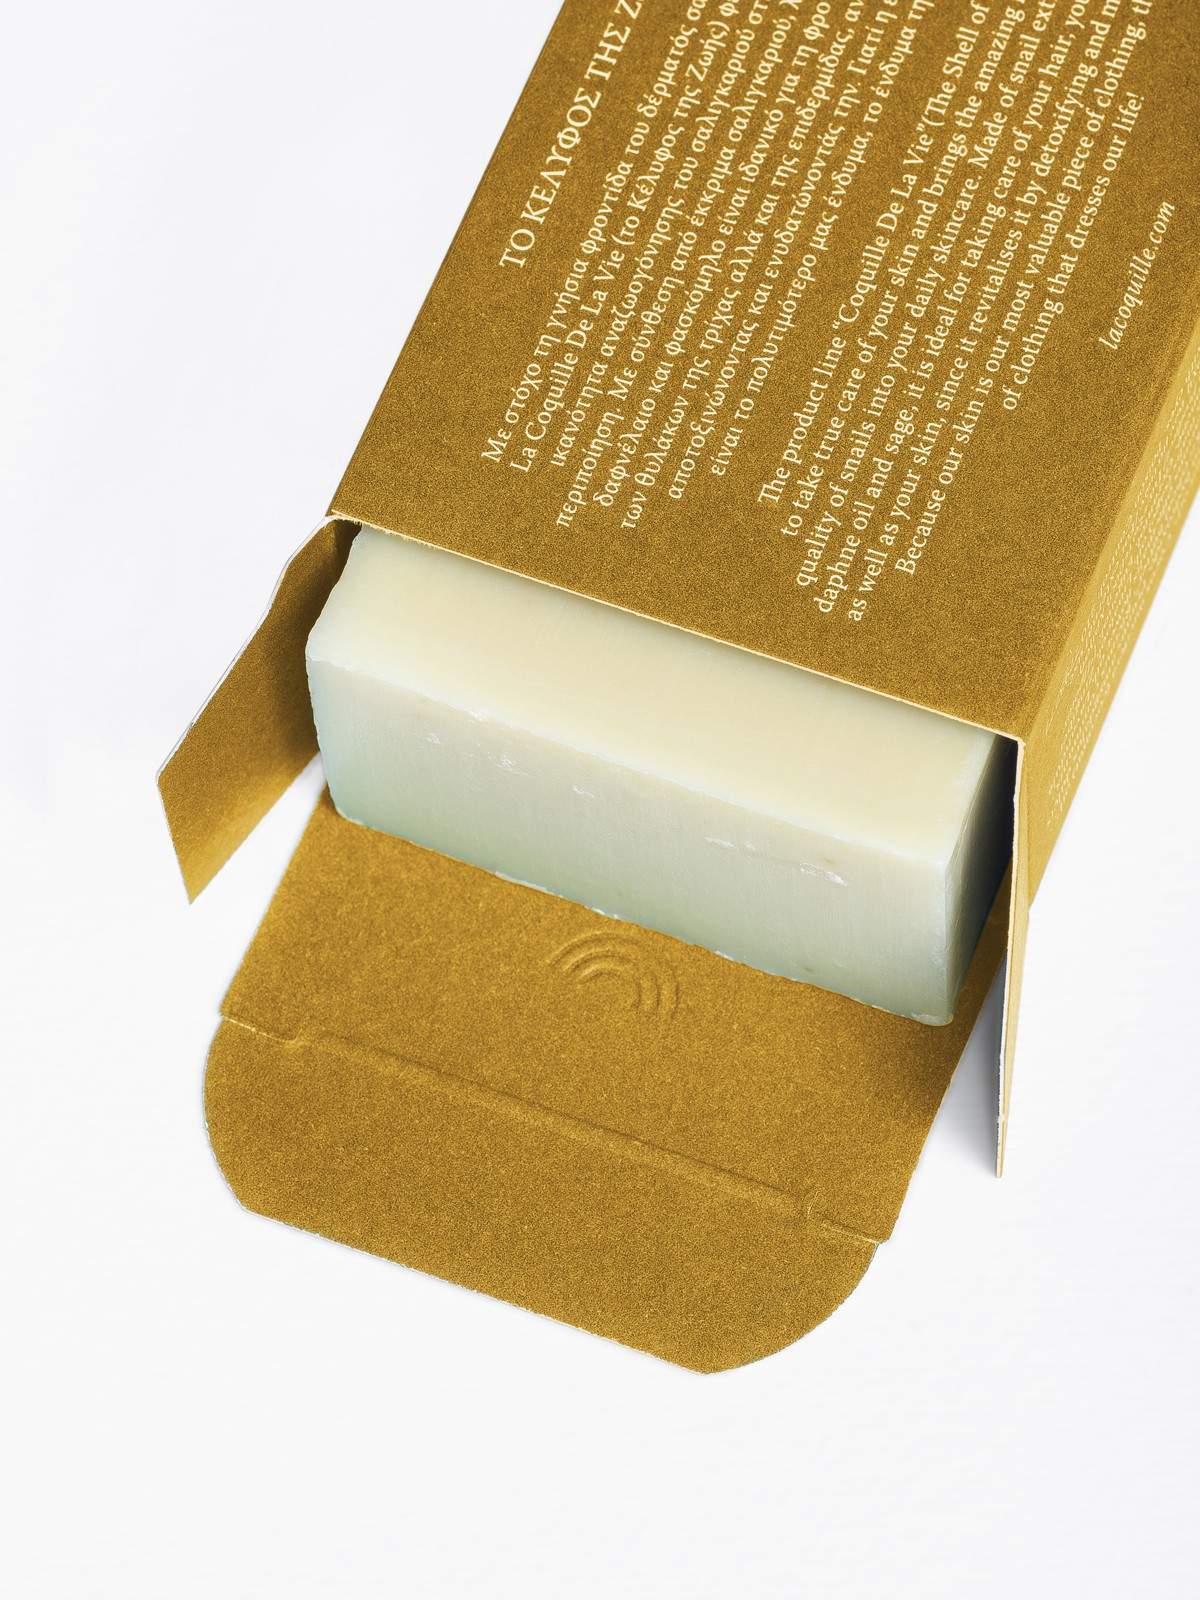 Snail secretion, Wild Lavender, Sulfur & Chamomile Soap bar